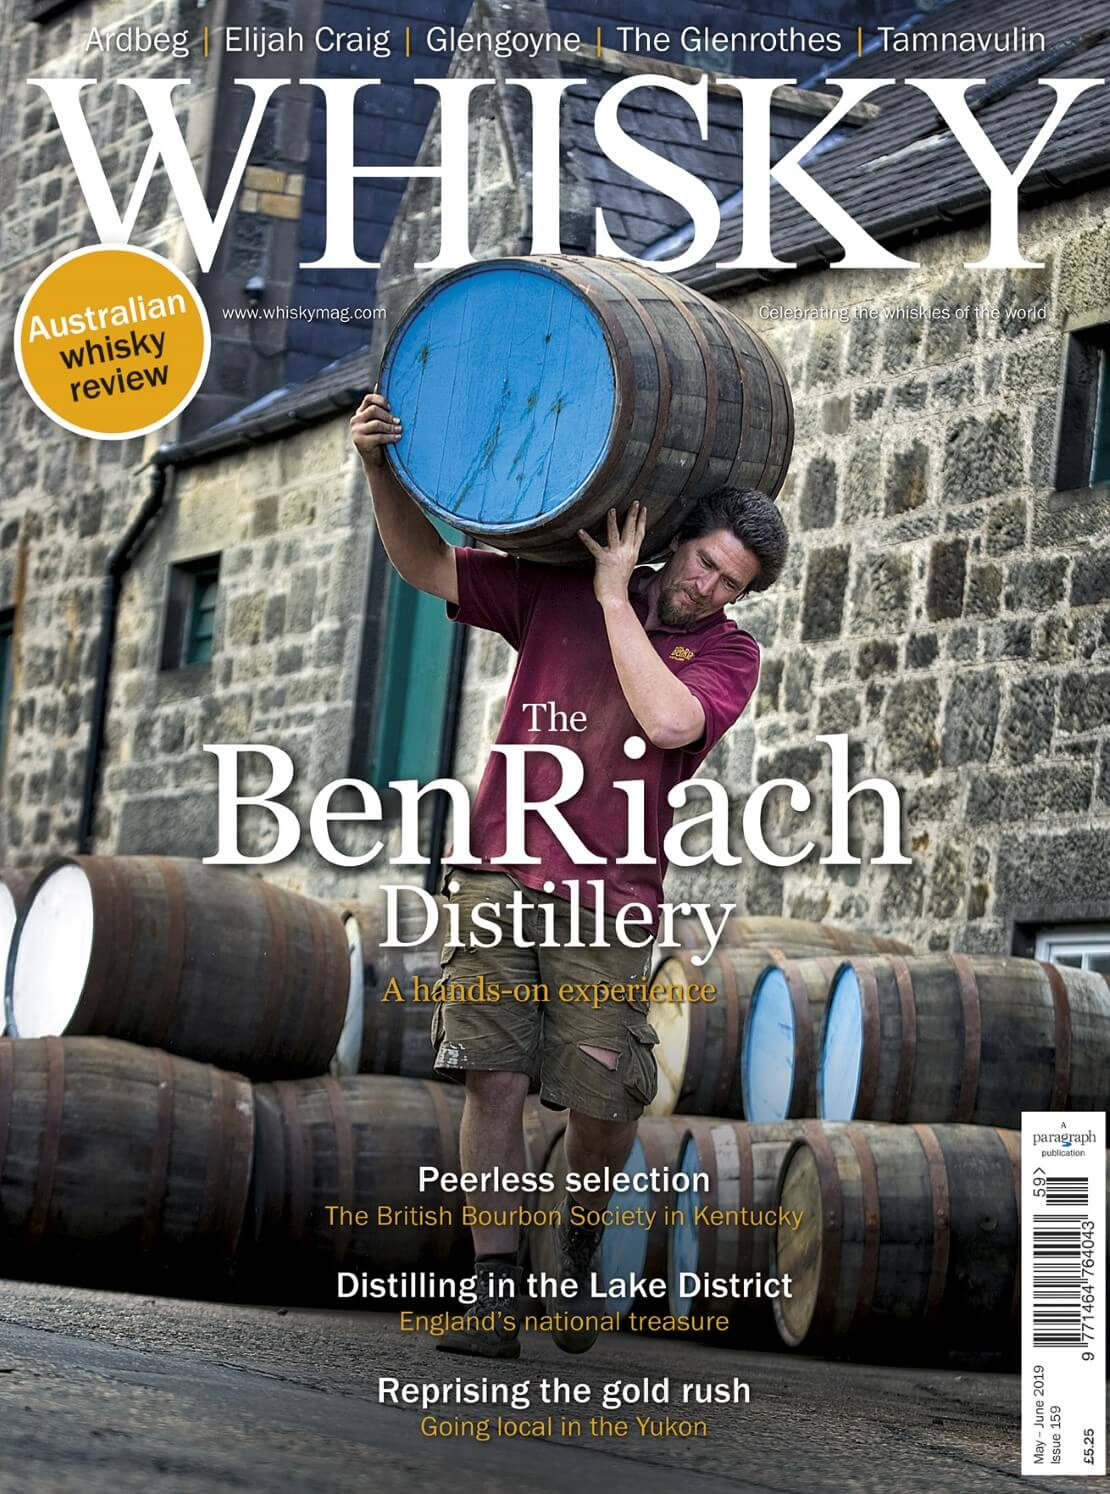 The BenRiach Distillery, Peerless selection, Distilling in the Lake District and Going Local in the Yukon.